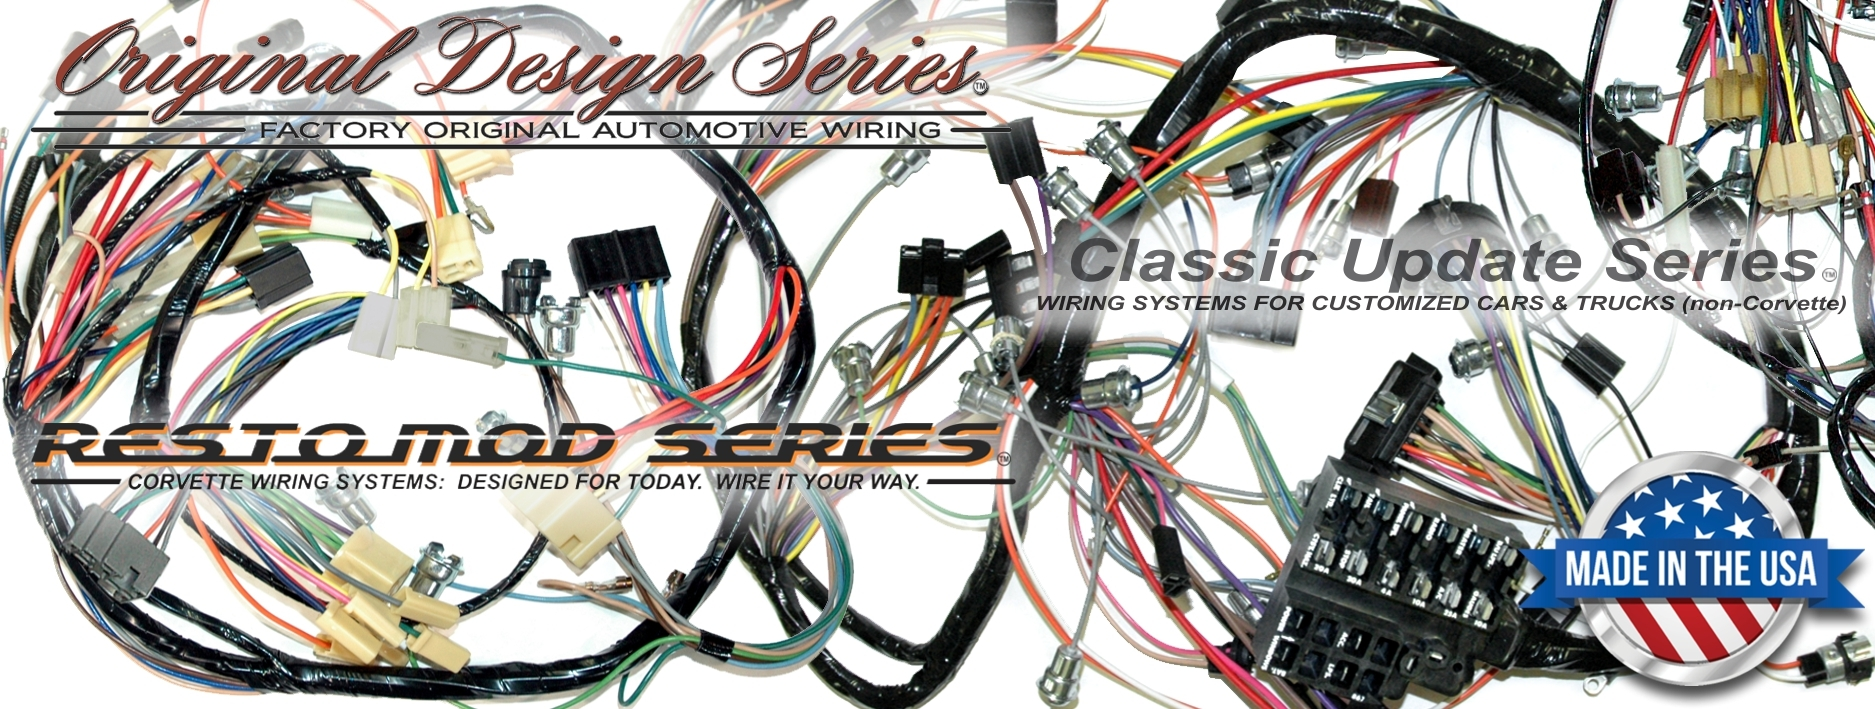 new header wiring_harnesses exact oem reproduction wiring harnesses and restomod wiring c3 corvette engine wiring harness at virtualis.co